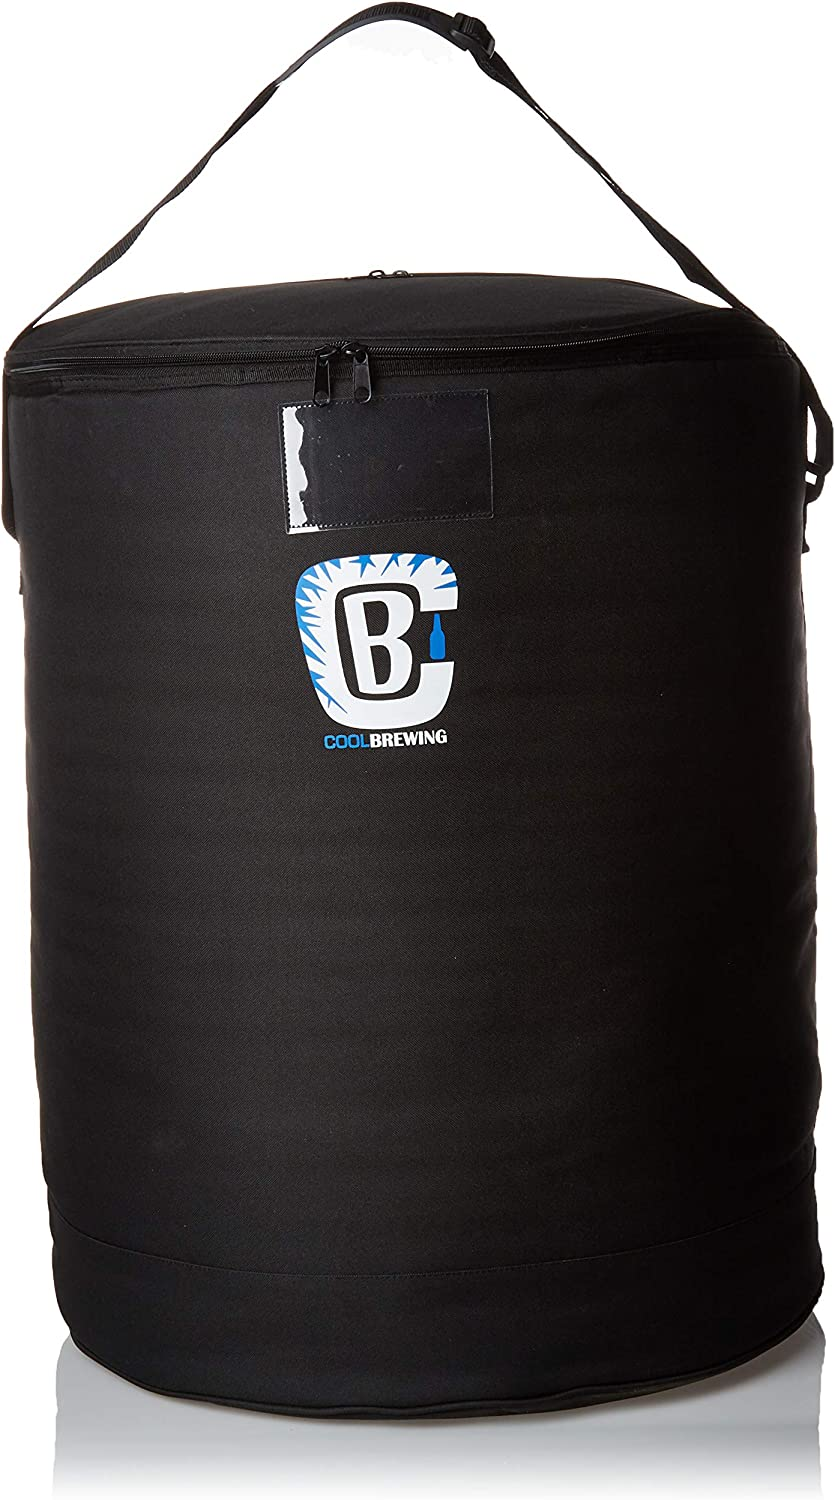 Home Brewing Fermentation Cooler - Beer Brewing Temperature Control, Keg Cooler, Fermentation Brewing Bag. The Original - Cool Brewing Fermentation Cooler.